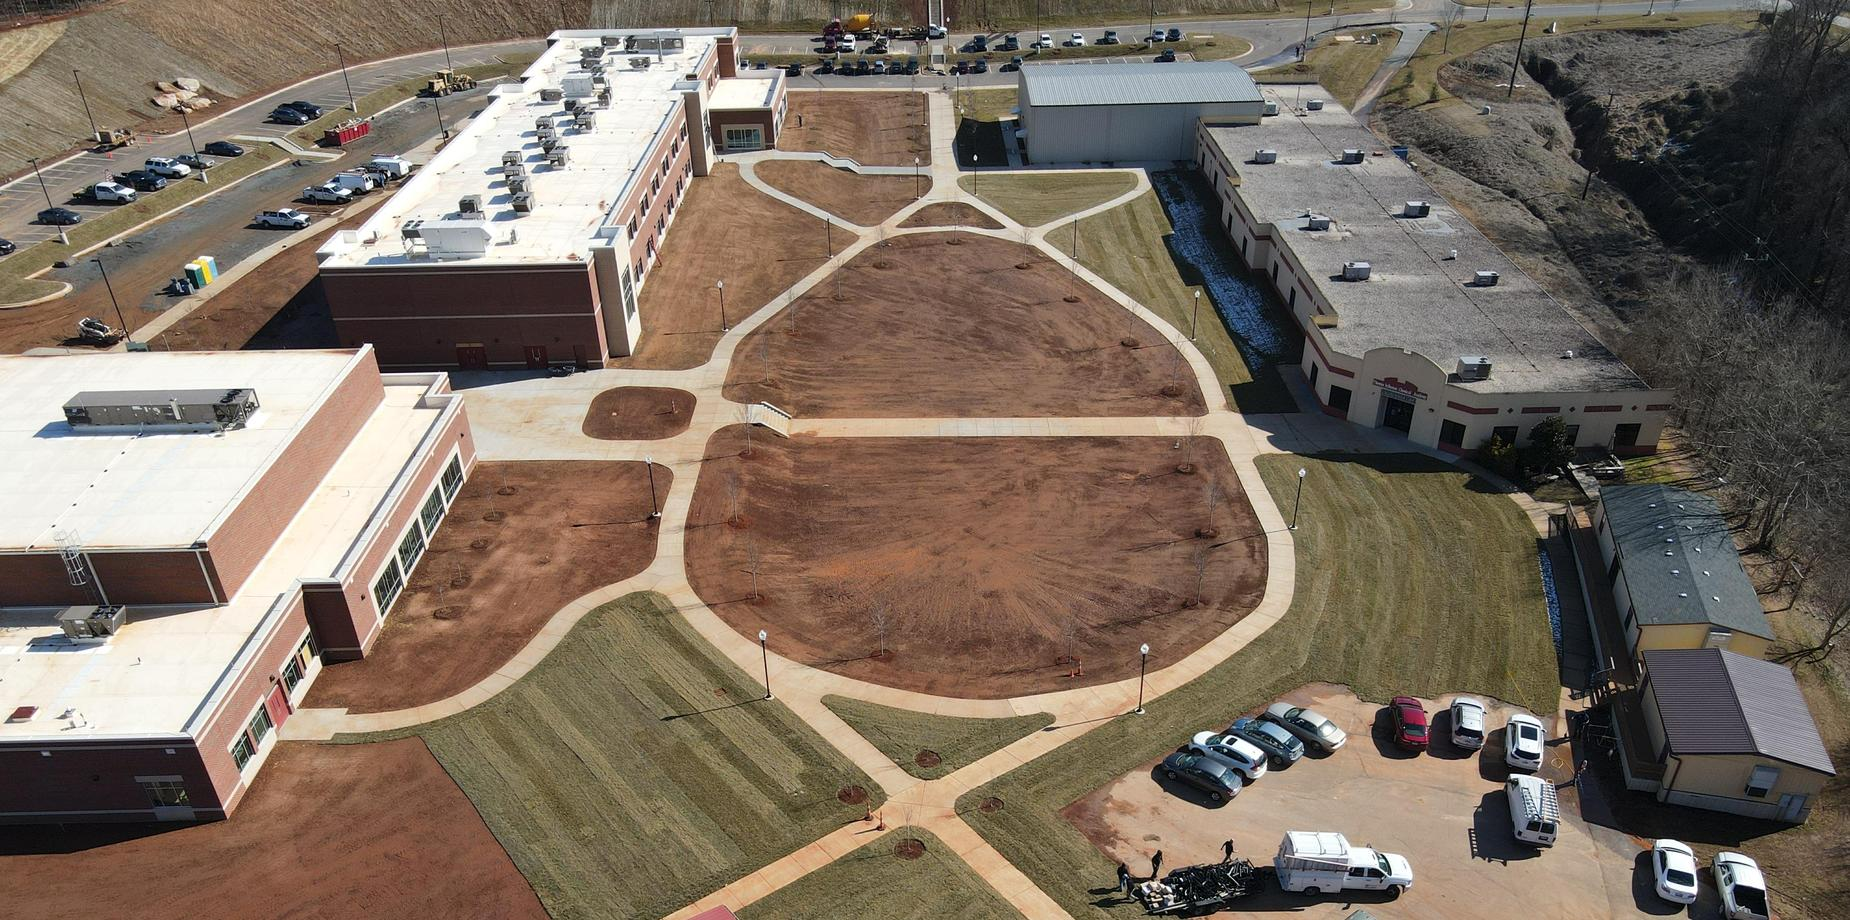 Overhead view of the campus improvements